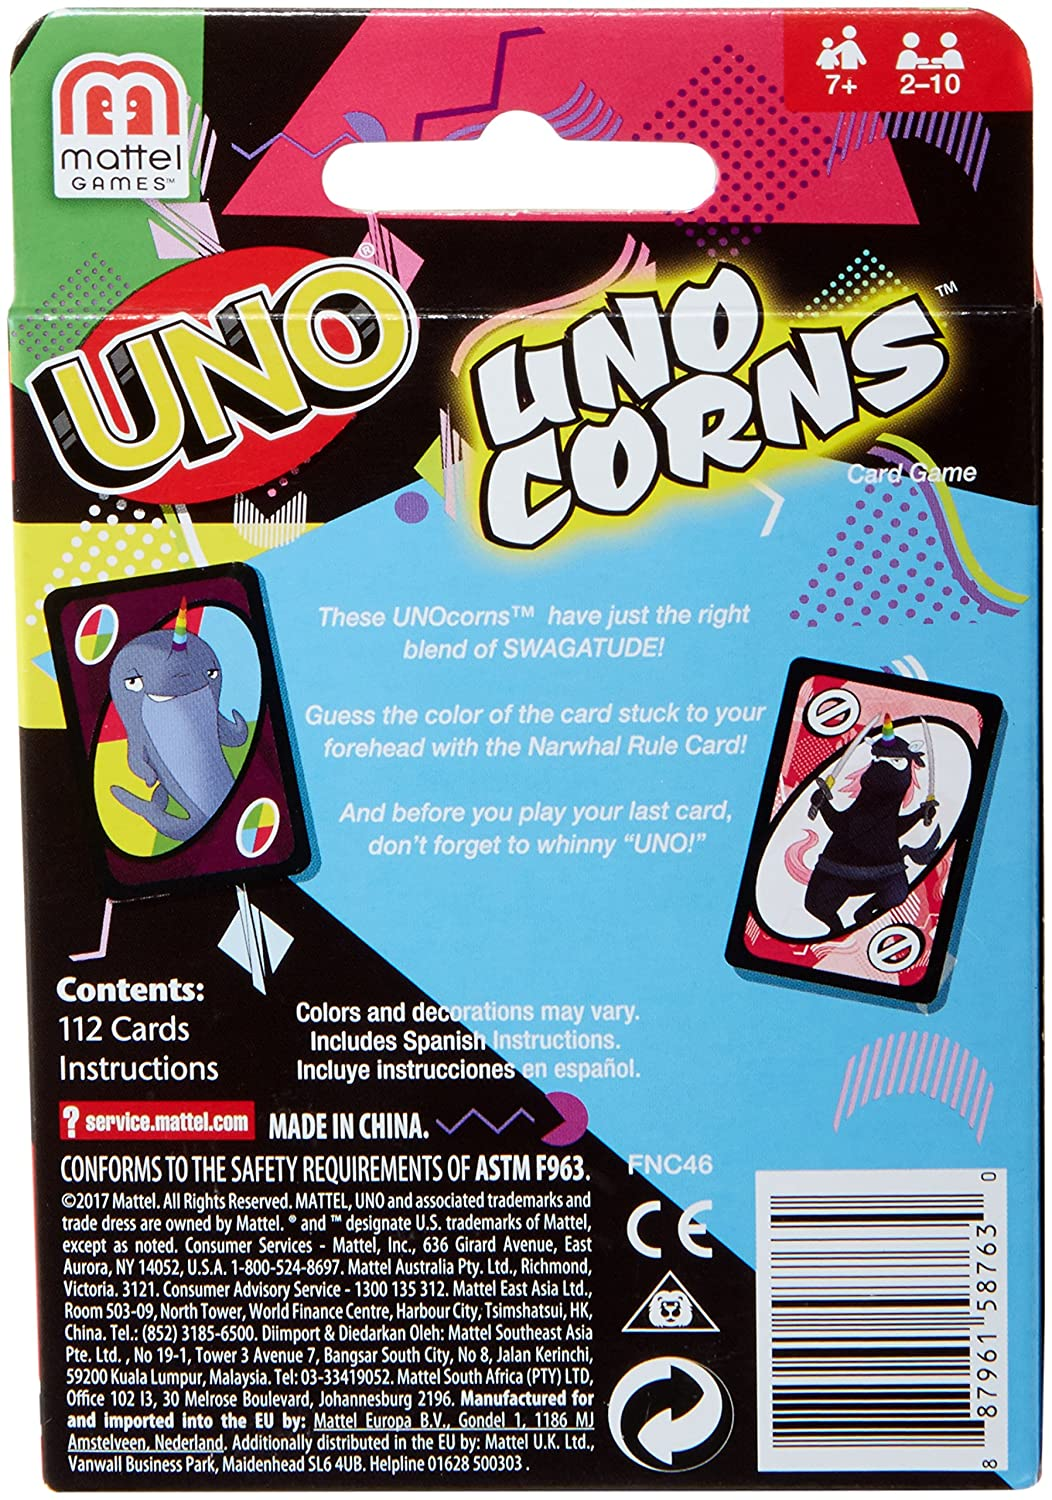 Amazon.com: UNOcorns Card Game: Toys & Games